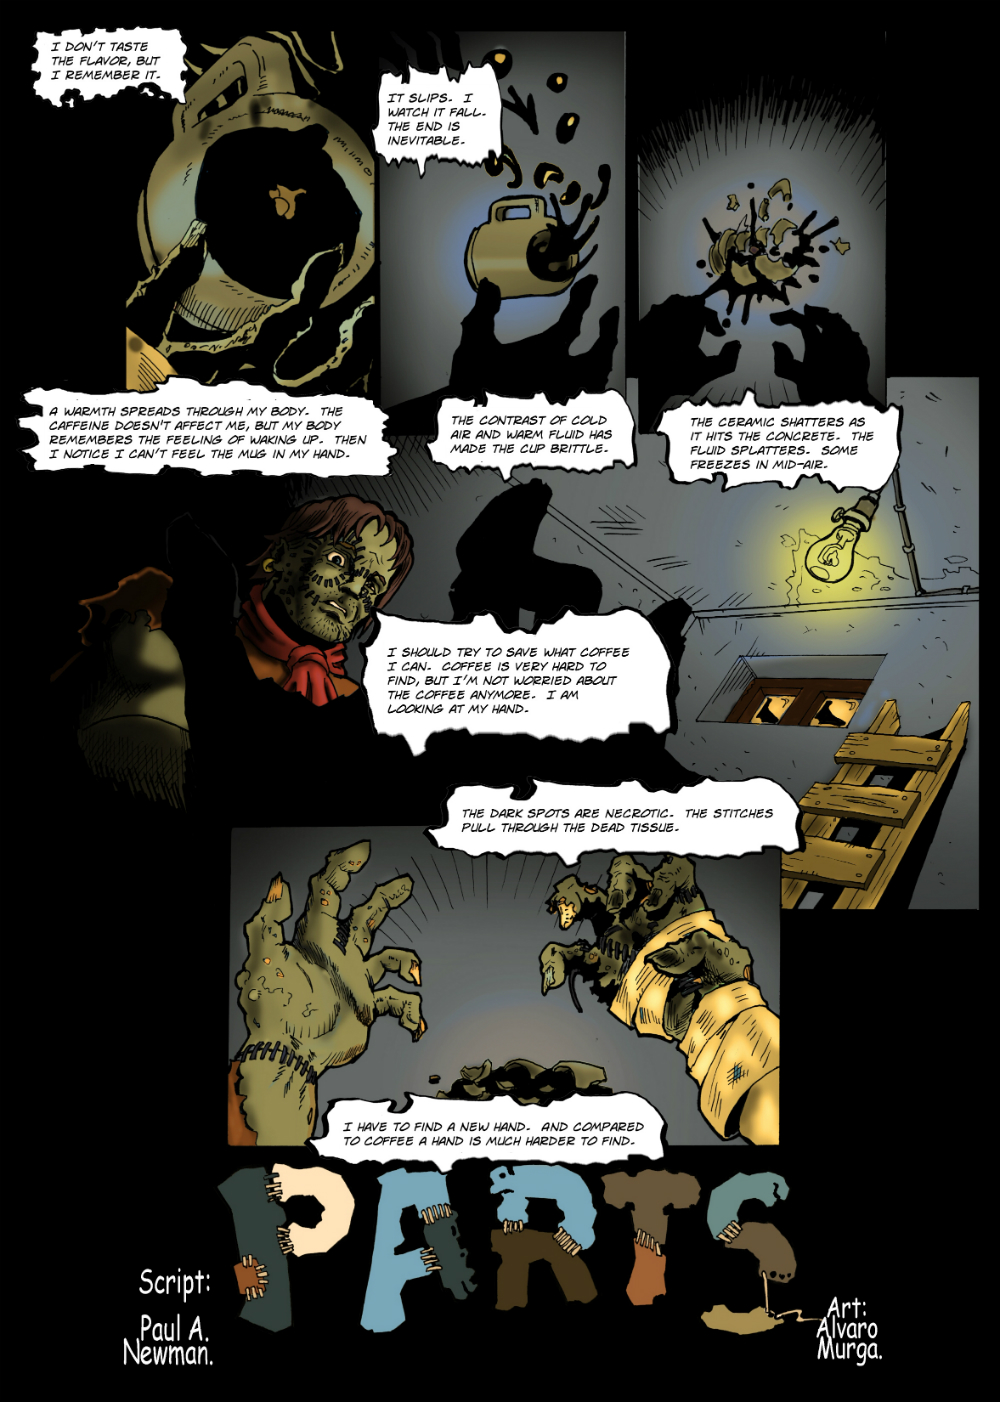 PARTS page 1 -- from THE BOOK OF LIES